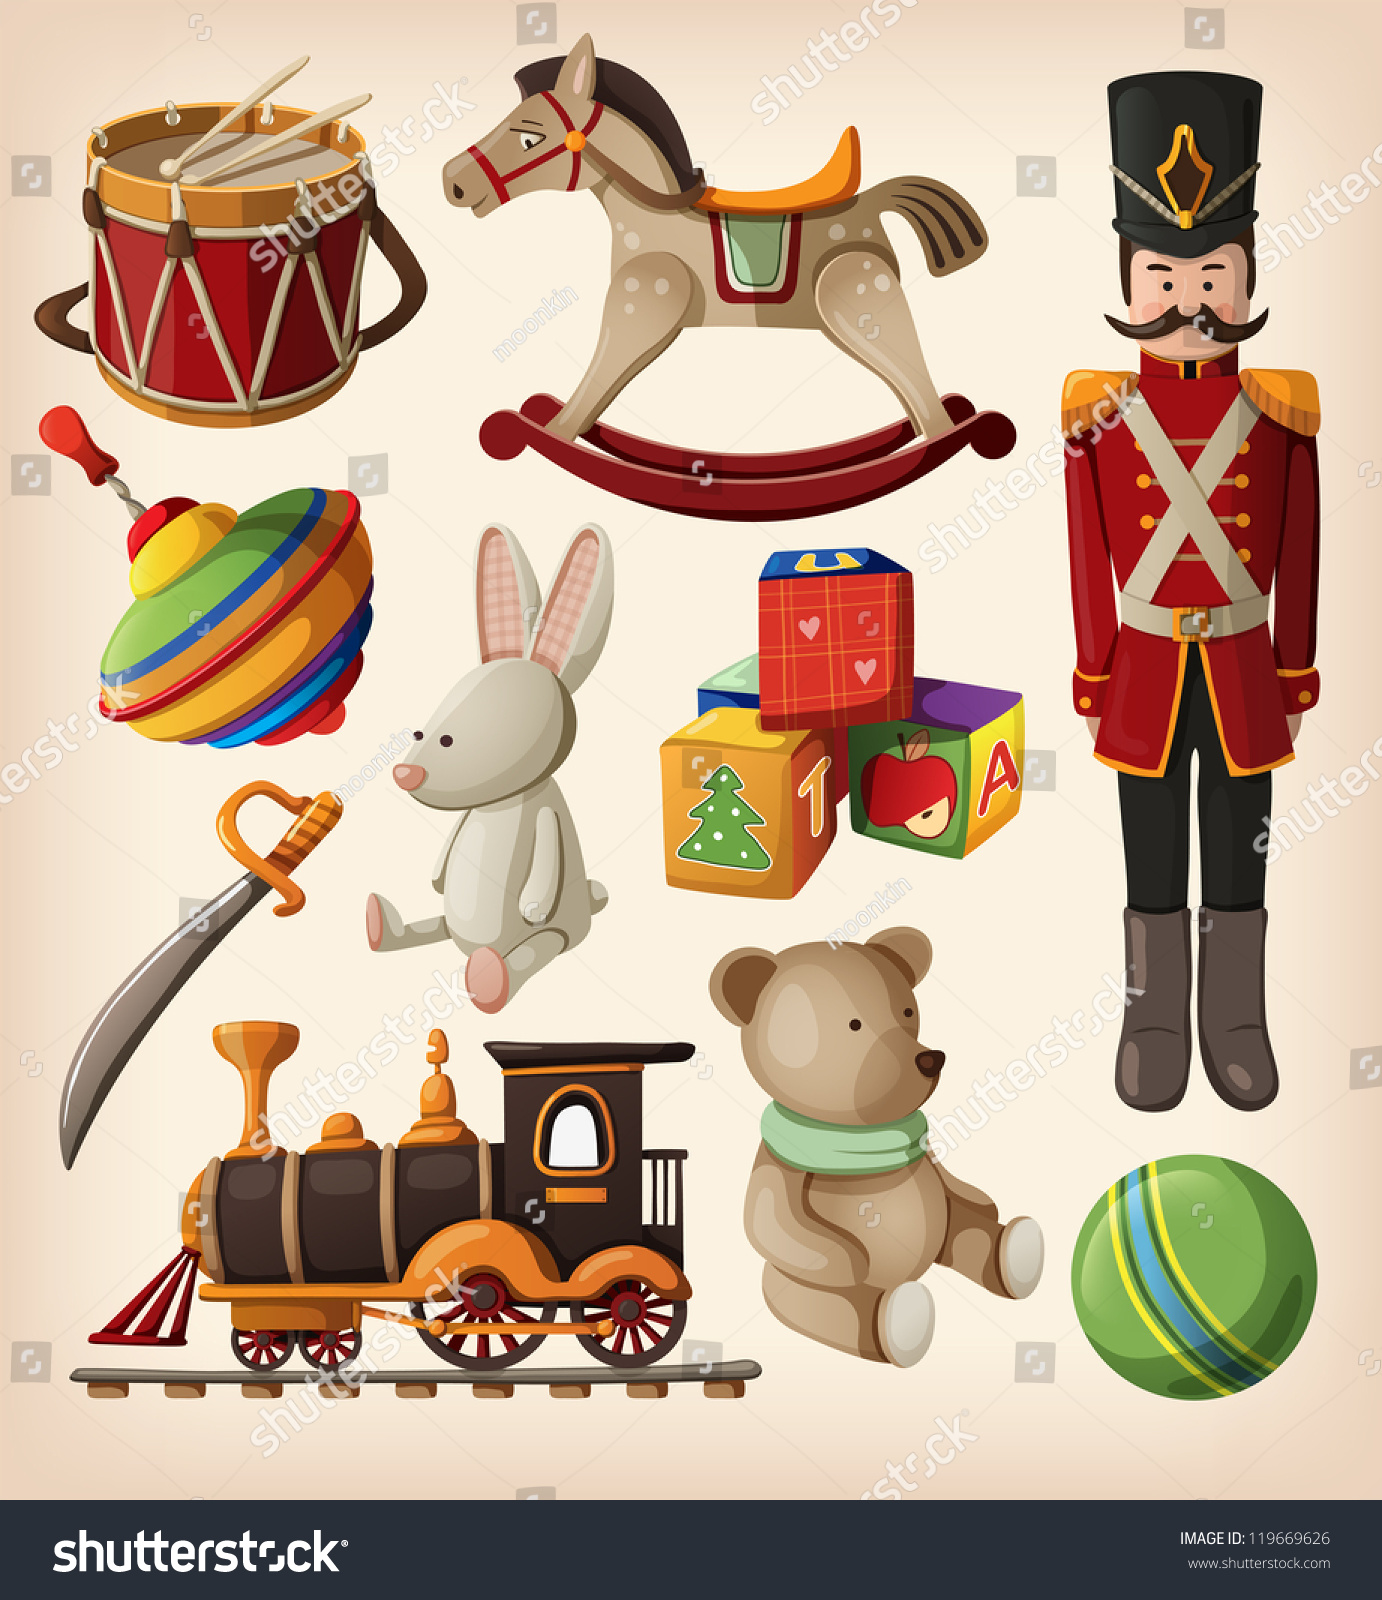 Christmas Toys Clip Art : Set of colorful vintage christmas toys for kids stock